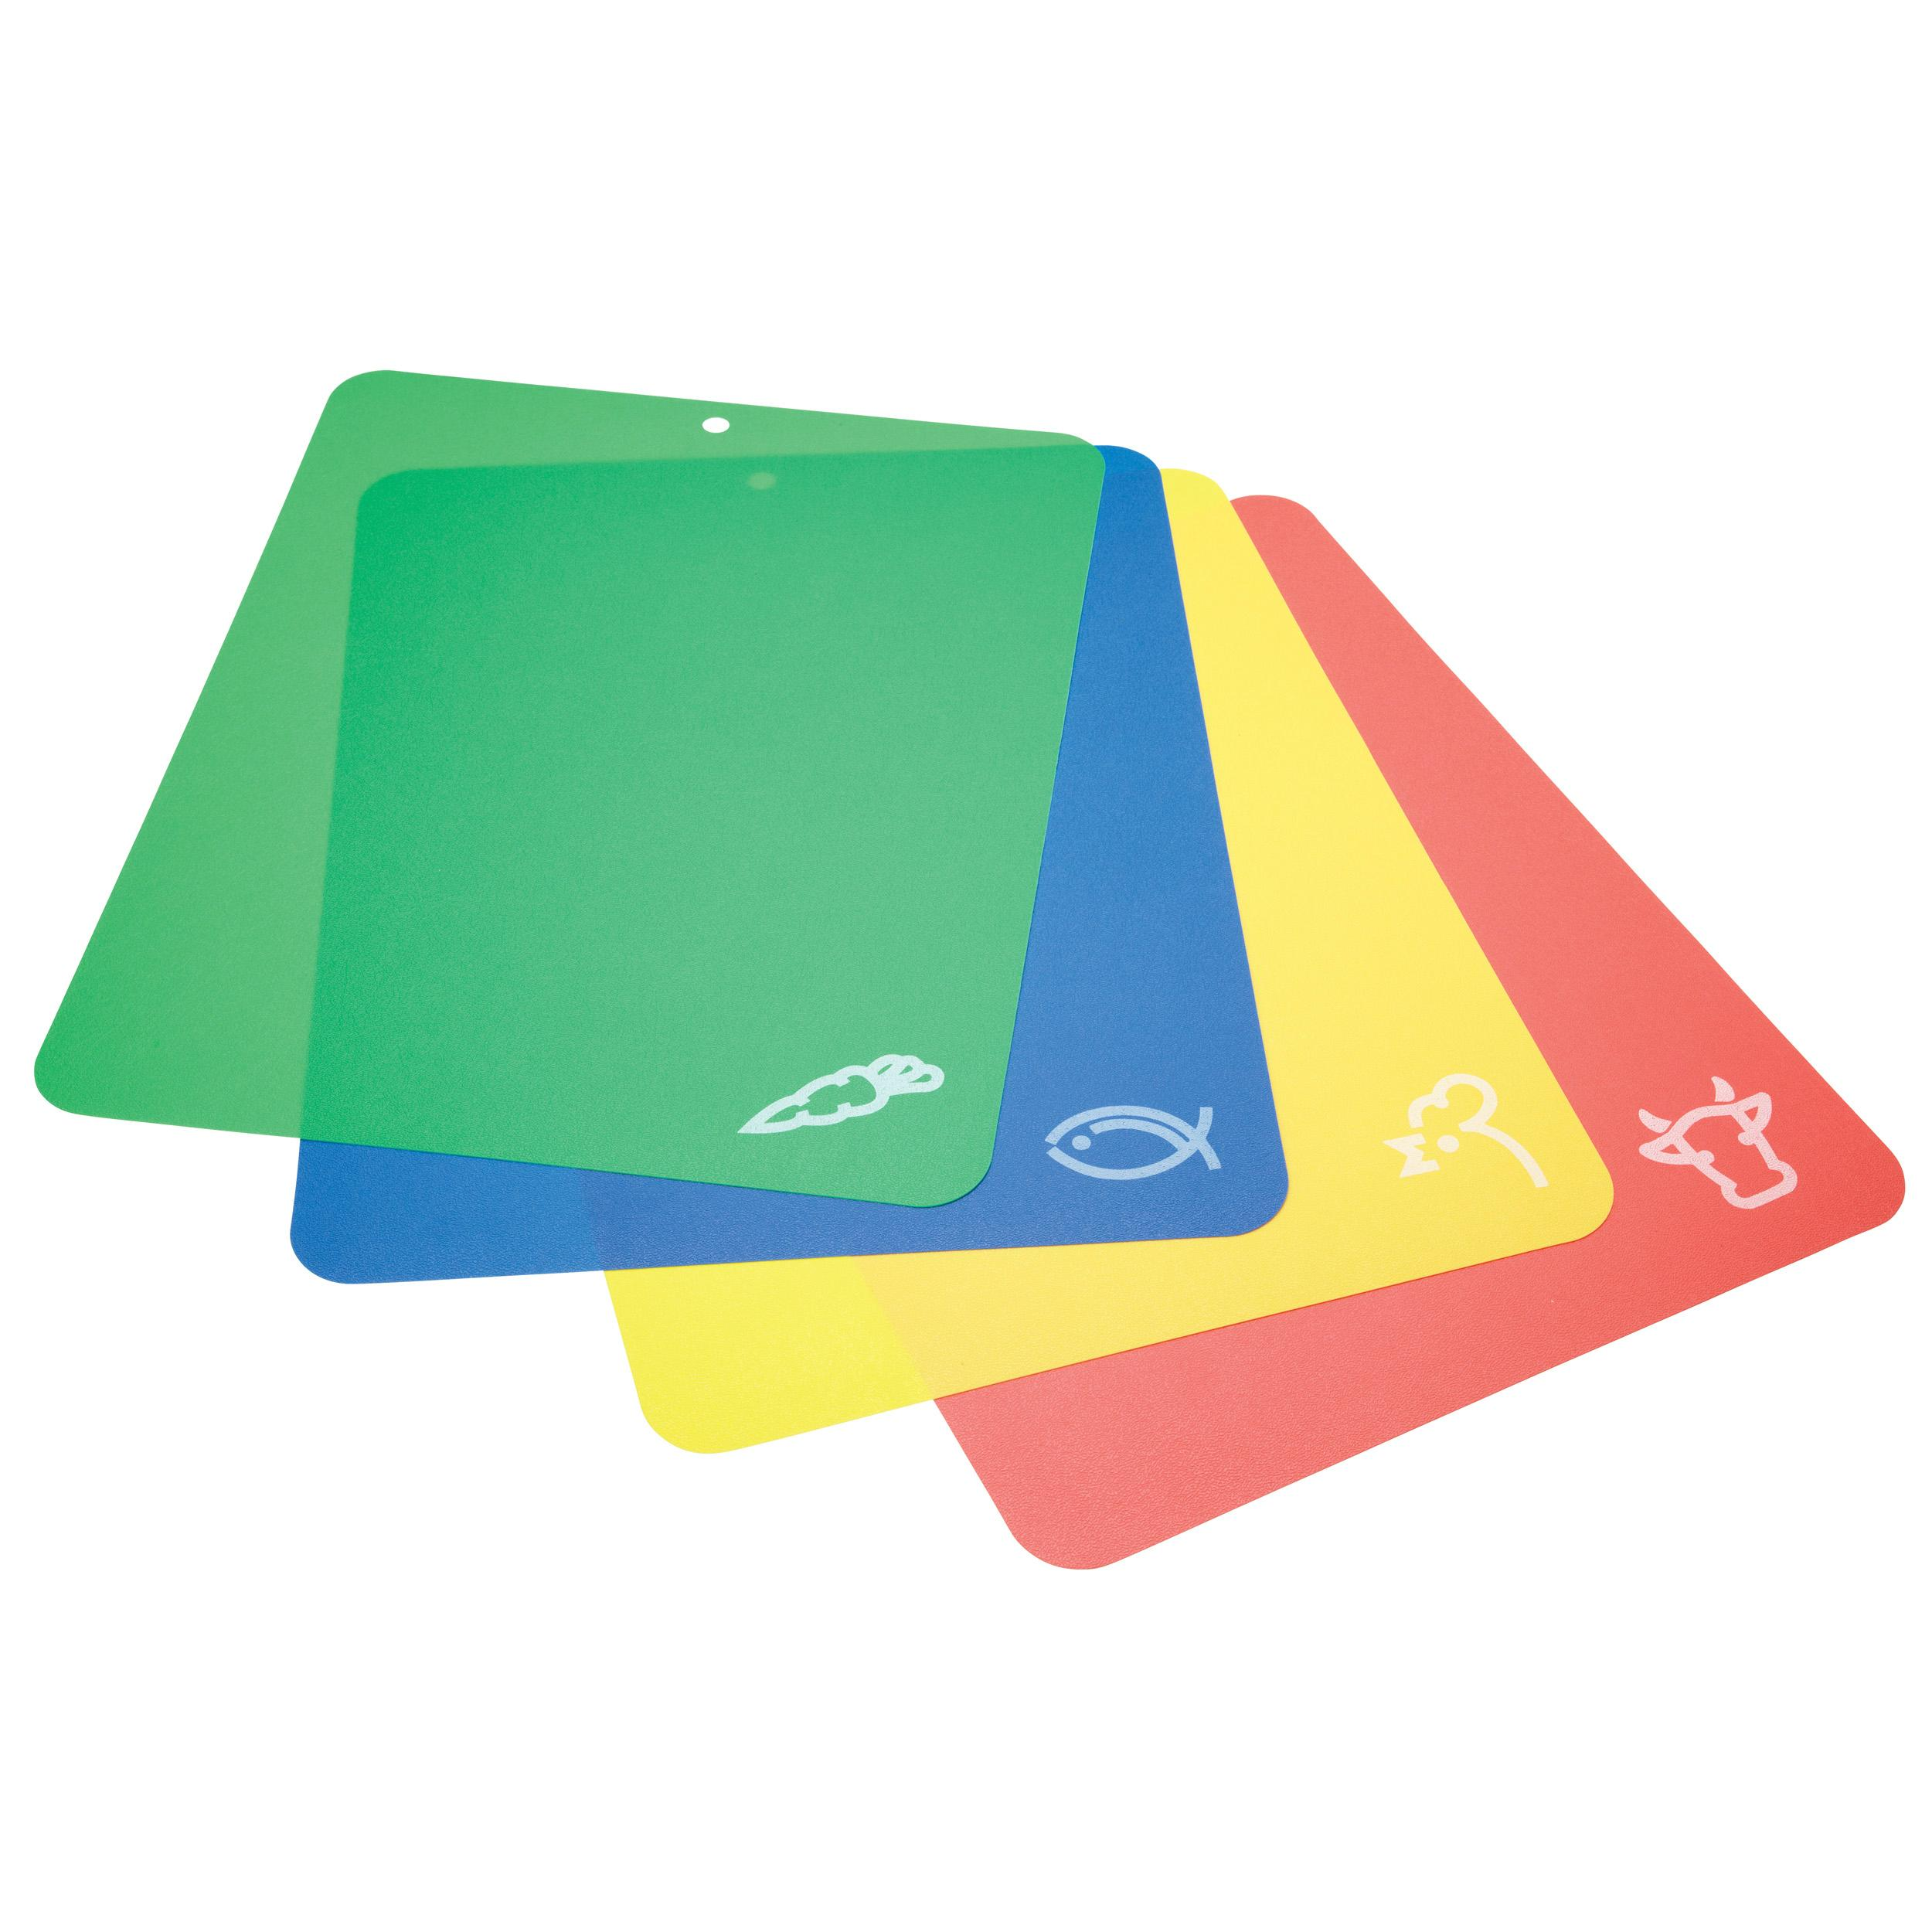 The item for sale is premier set of 5 coloured flexible chopping - Kitchencraft Plastic Colour Coded Chopping Board Set Flexible